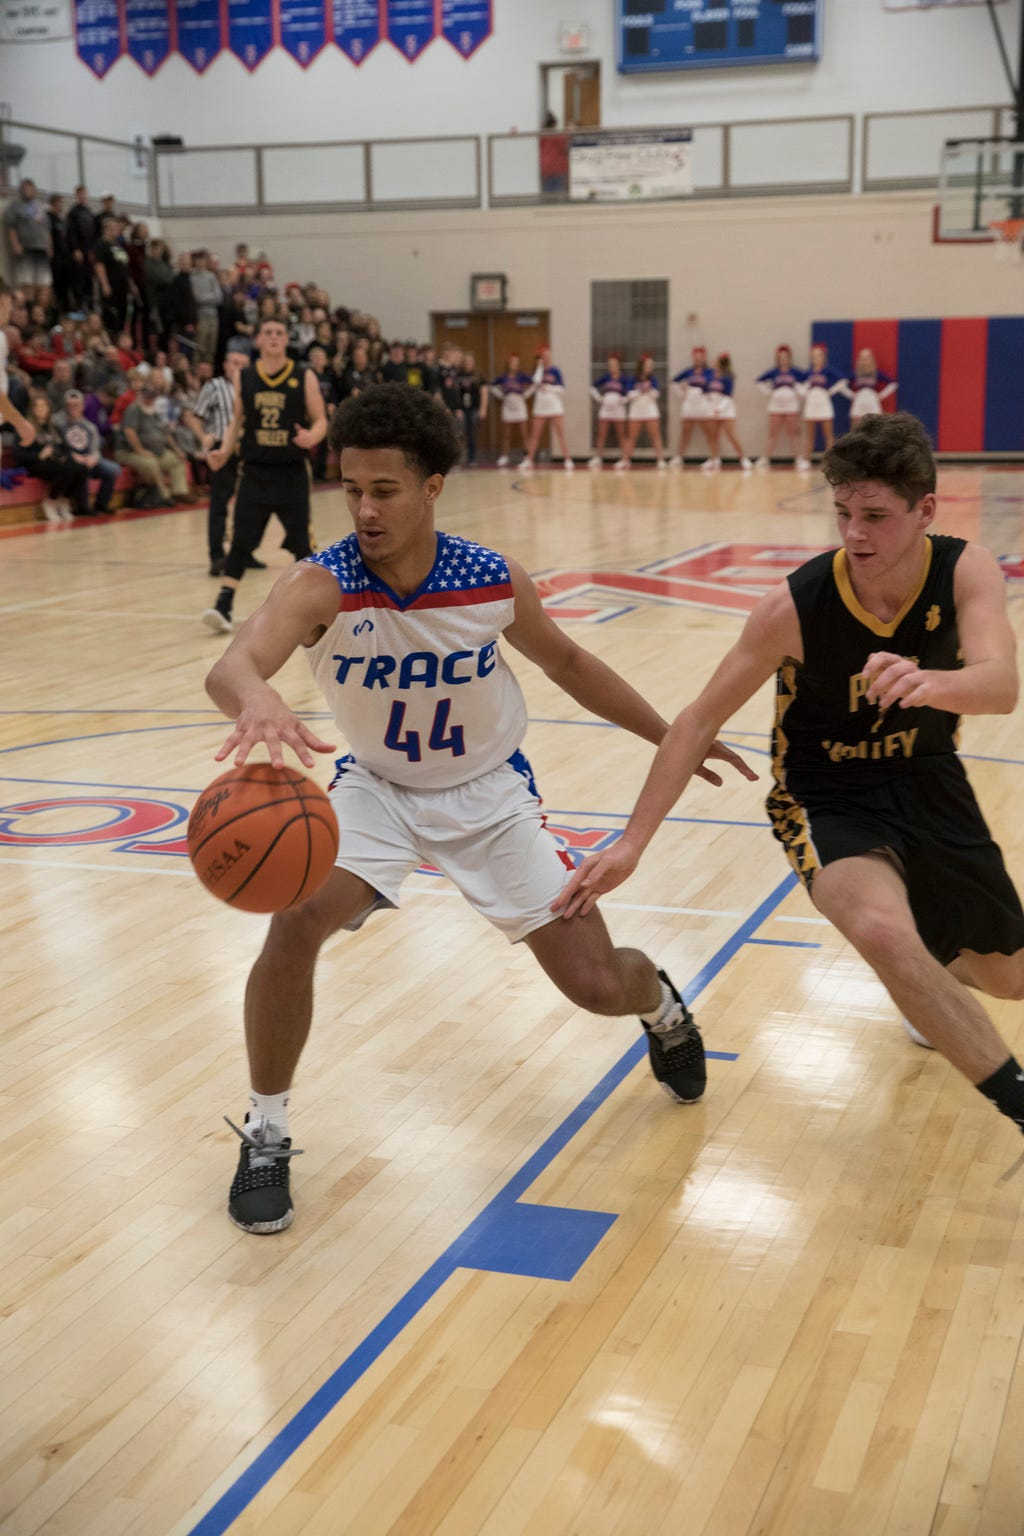 Zane Trace defeated Paint Valley 82-61 Dec. 8 at Zane Trace High School.